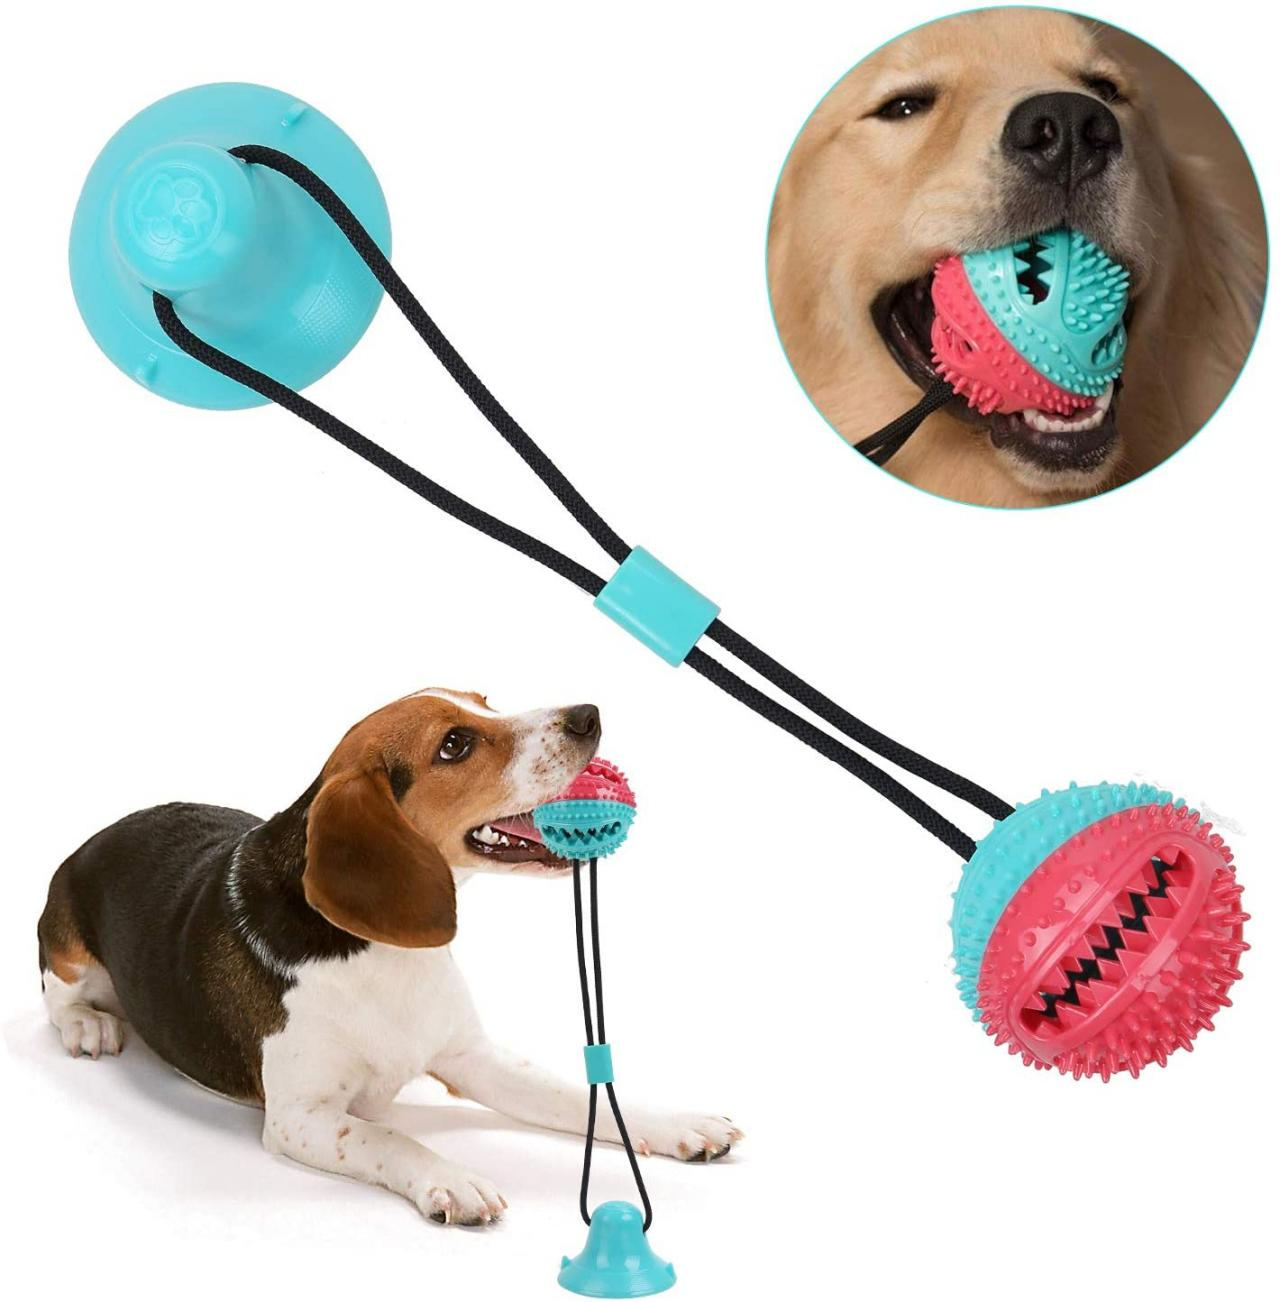 Dog Chew Toys Pet Supplies,Suction Cup Dog Toy Pet Molar Bite Toy Self-Playing Rubber Chew Ball Teeth Cleaning and Food Dispensing for Dogs Puppy Cats